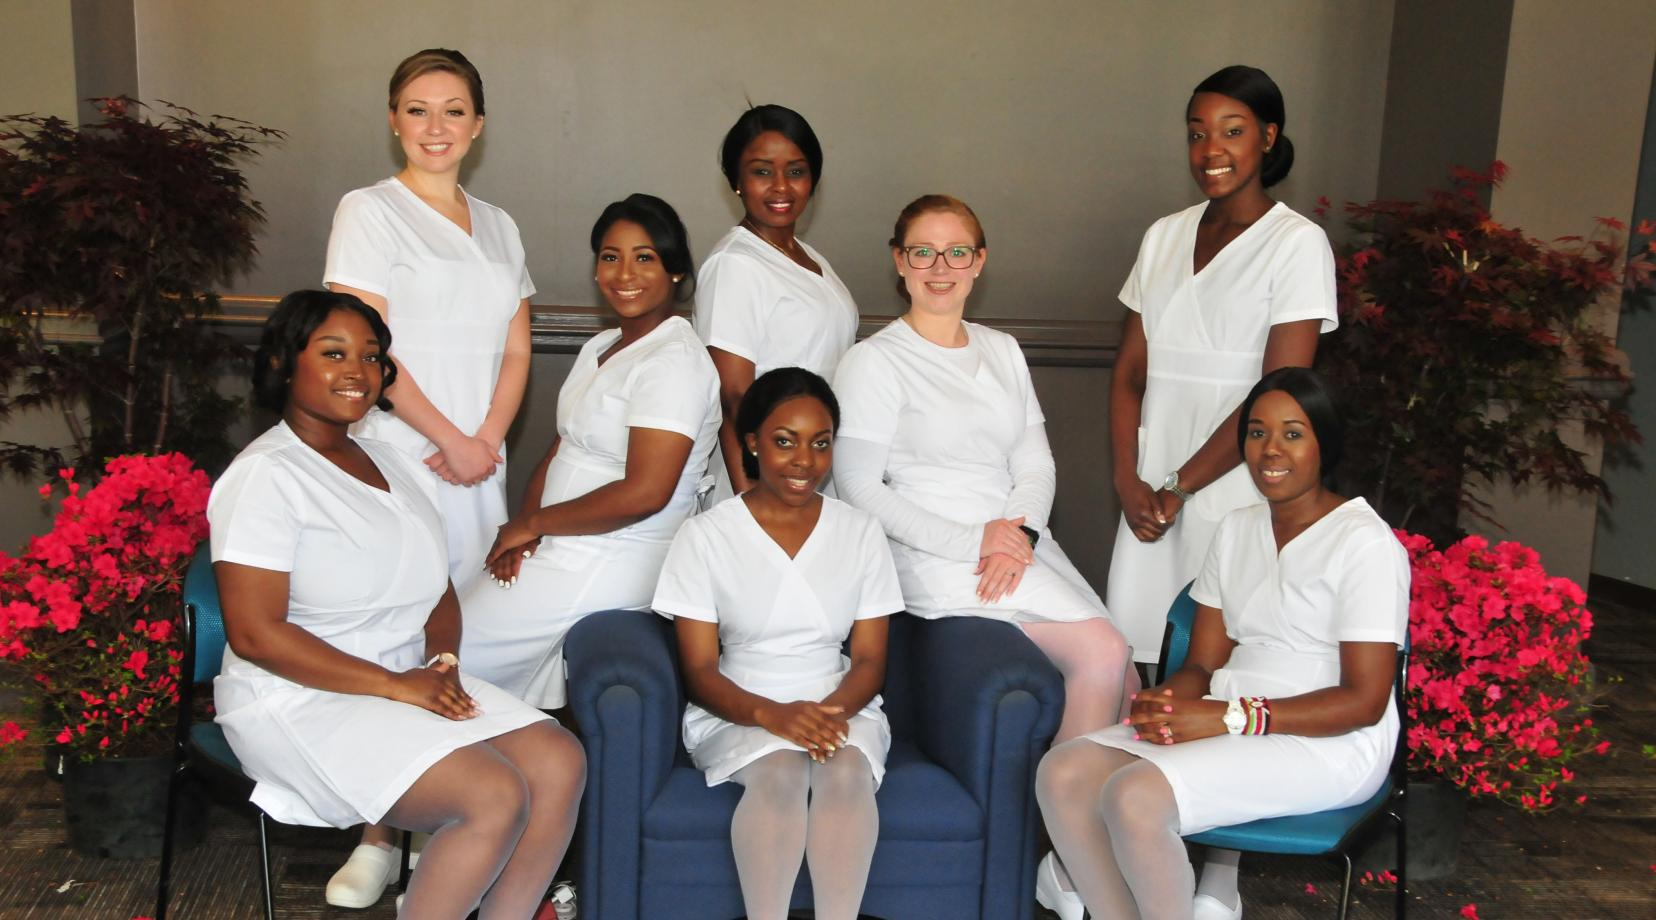 <p>DSU Department of Nursing's Class of 2018: (l-r) Alexis Sudler, Idalis Stamas, Breanna Clinton, Jadidah Gatheri (standing), Emmanuella Che (seated), Katherine Groves, Kayla Nelson and Mary Muthini.</p>